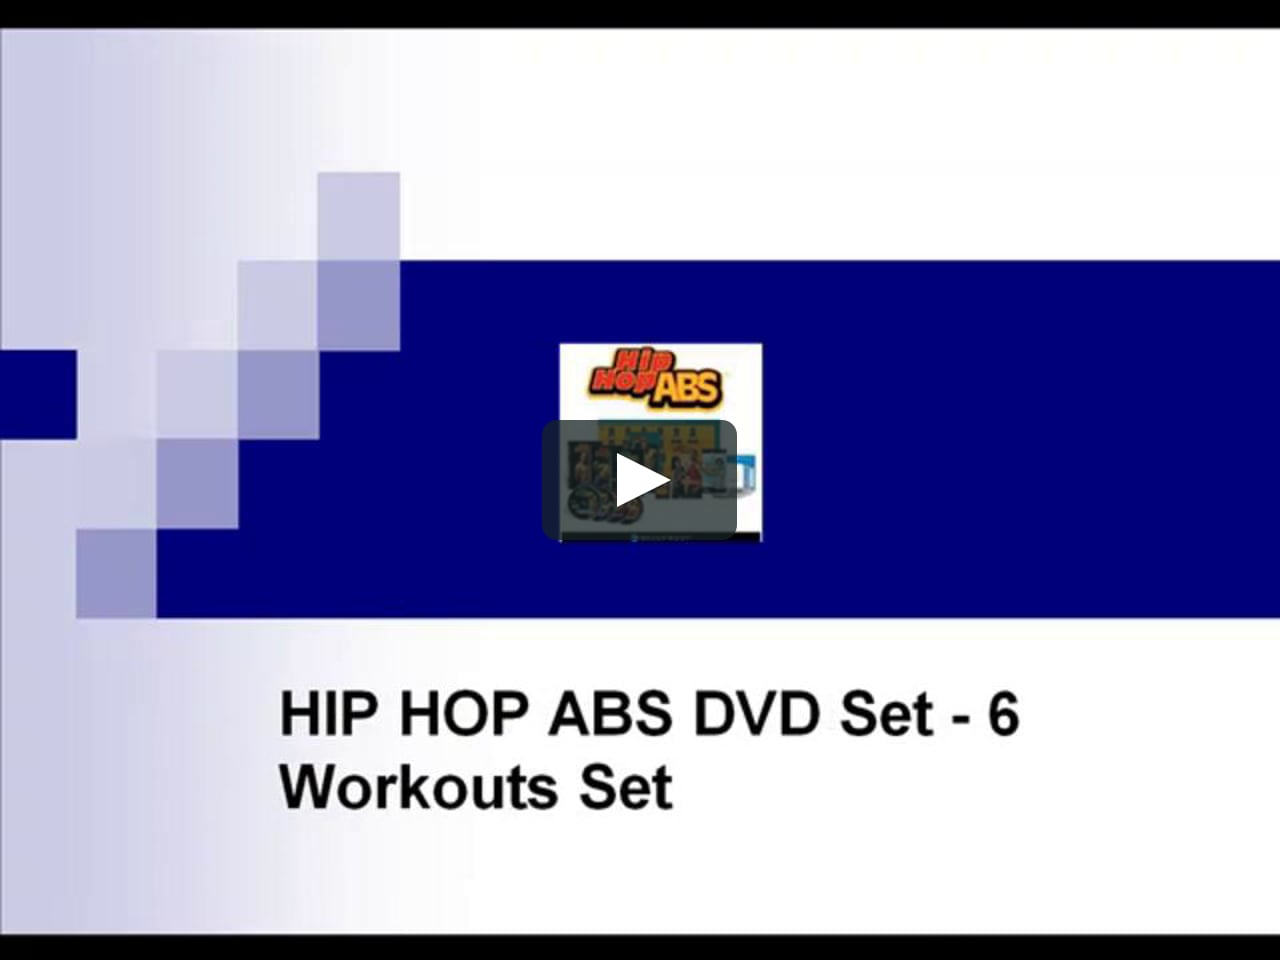 shaun t hip hop abs workout free torrent download